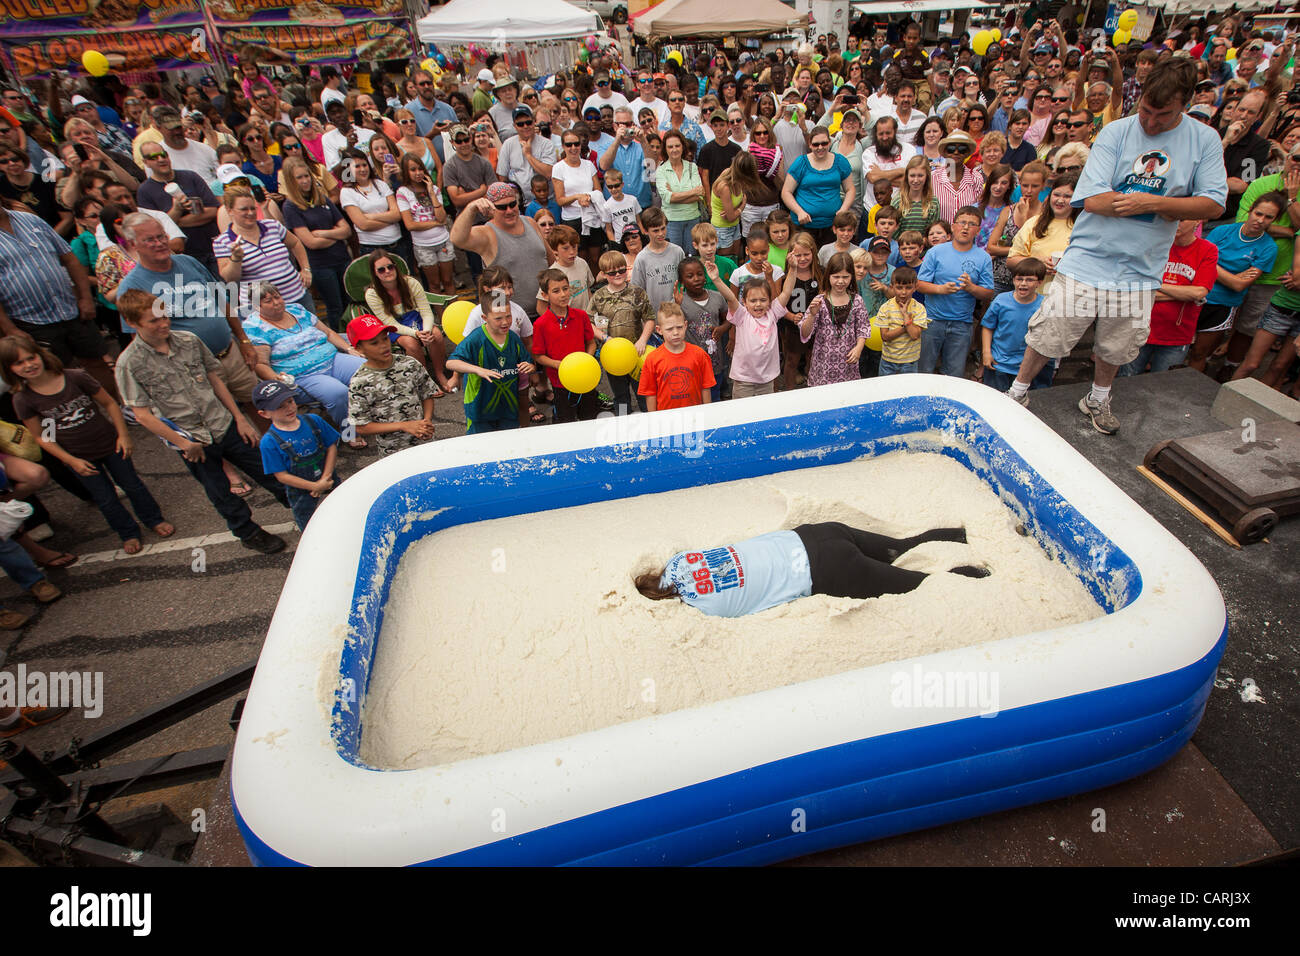 A competitor lays face down in a pool of instant grits during the grits roll competition at the World Grits Festival - Stock Image